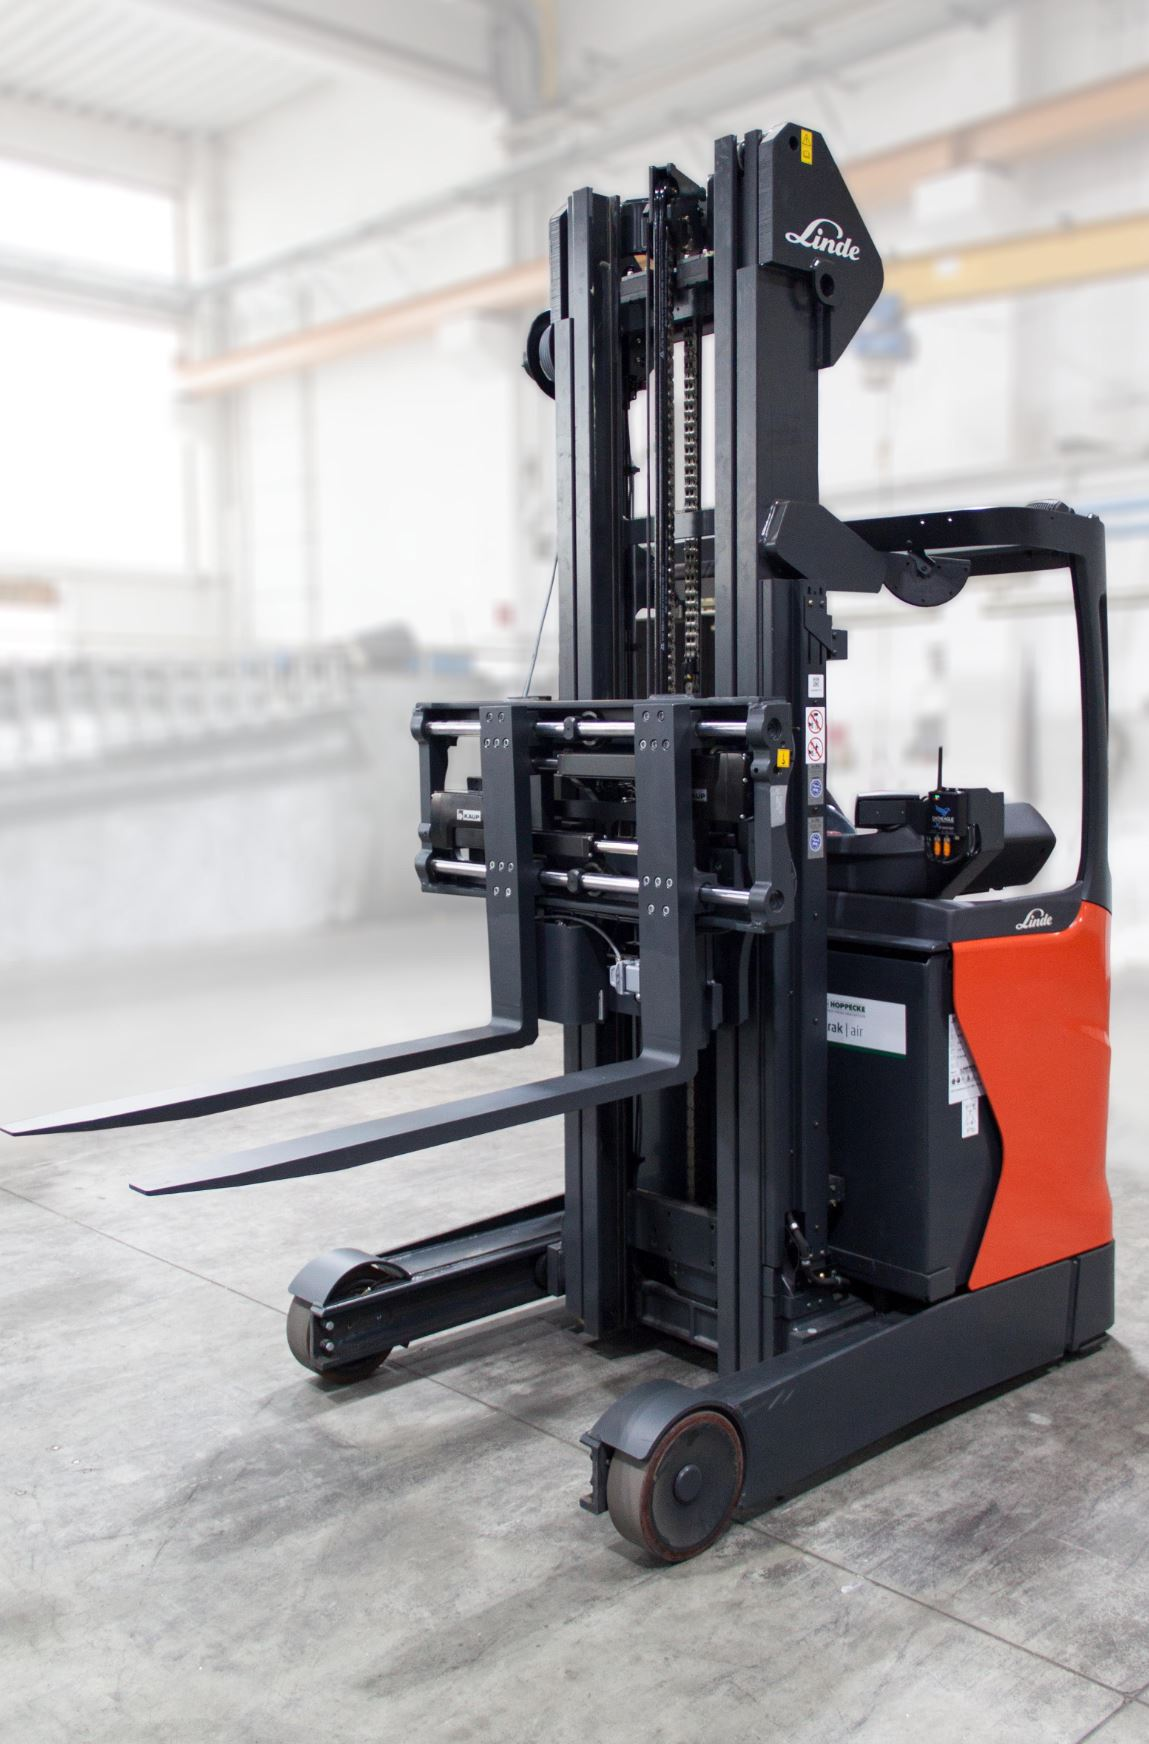 B&B Attachments exhibits its first electronically operated attachment at IMHX 2019